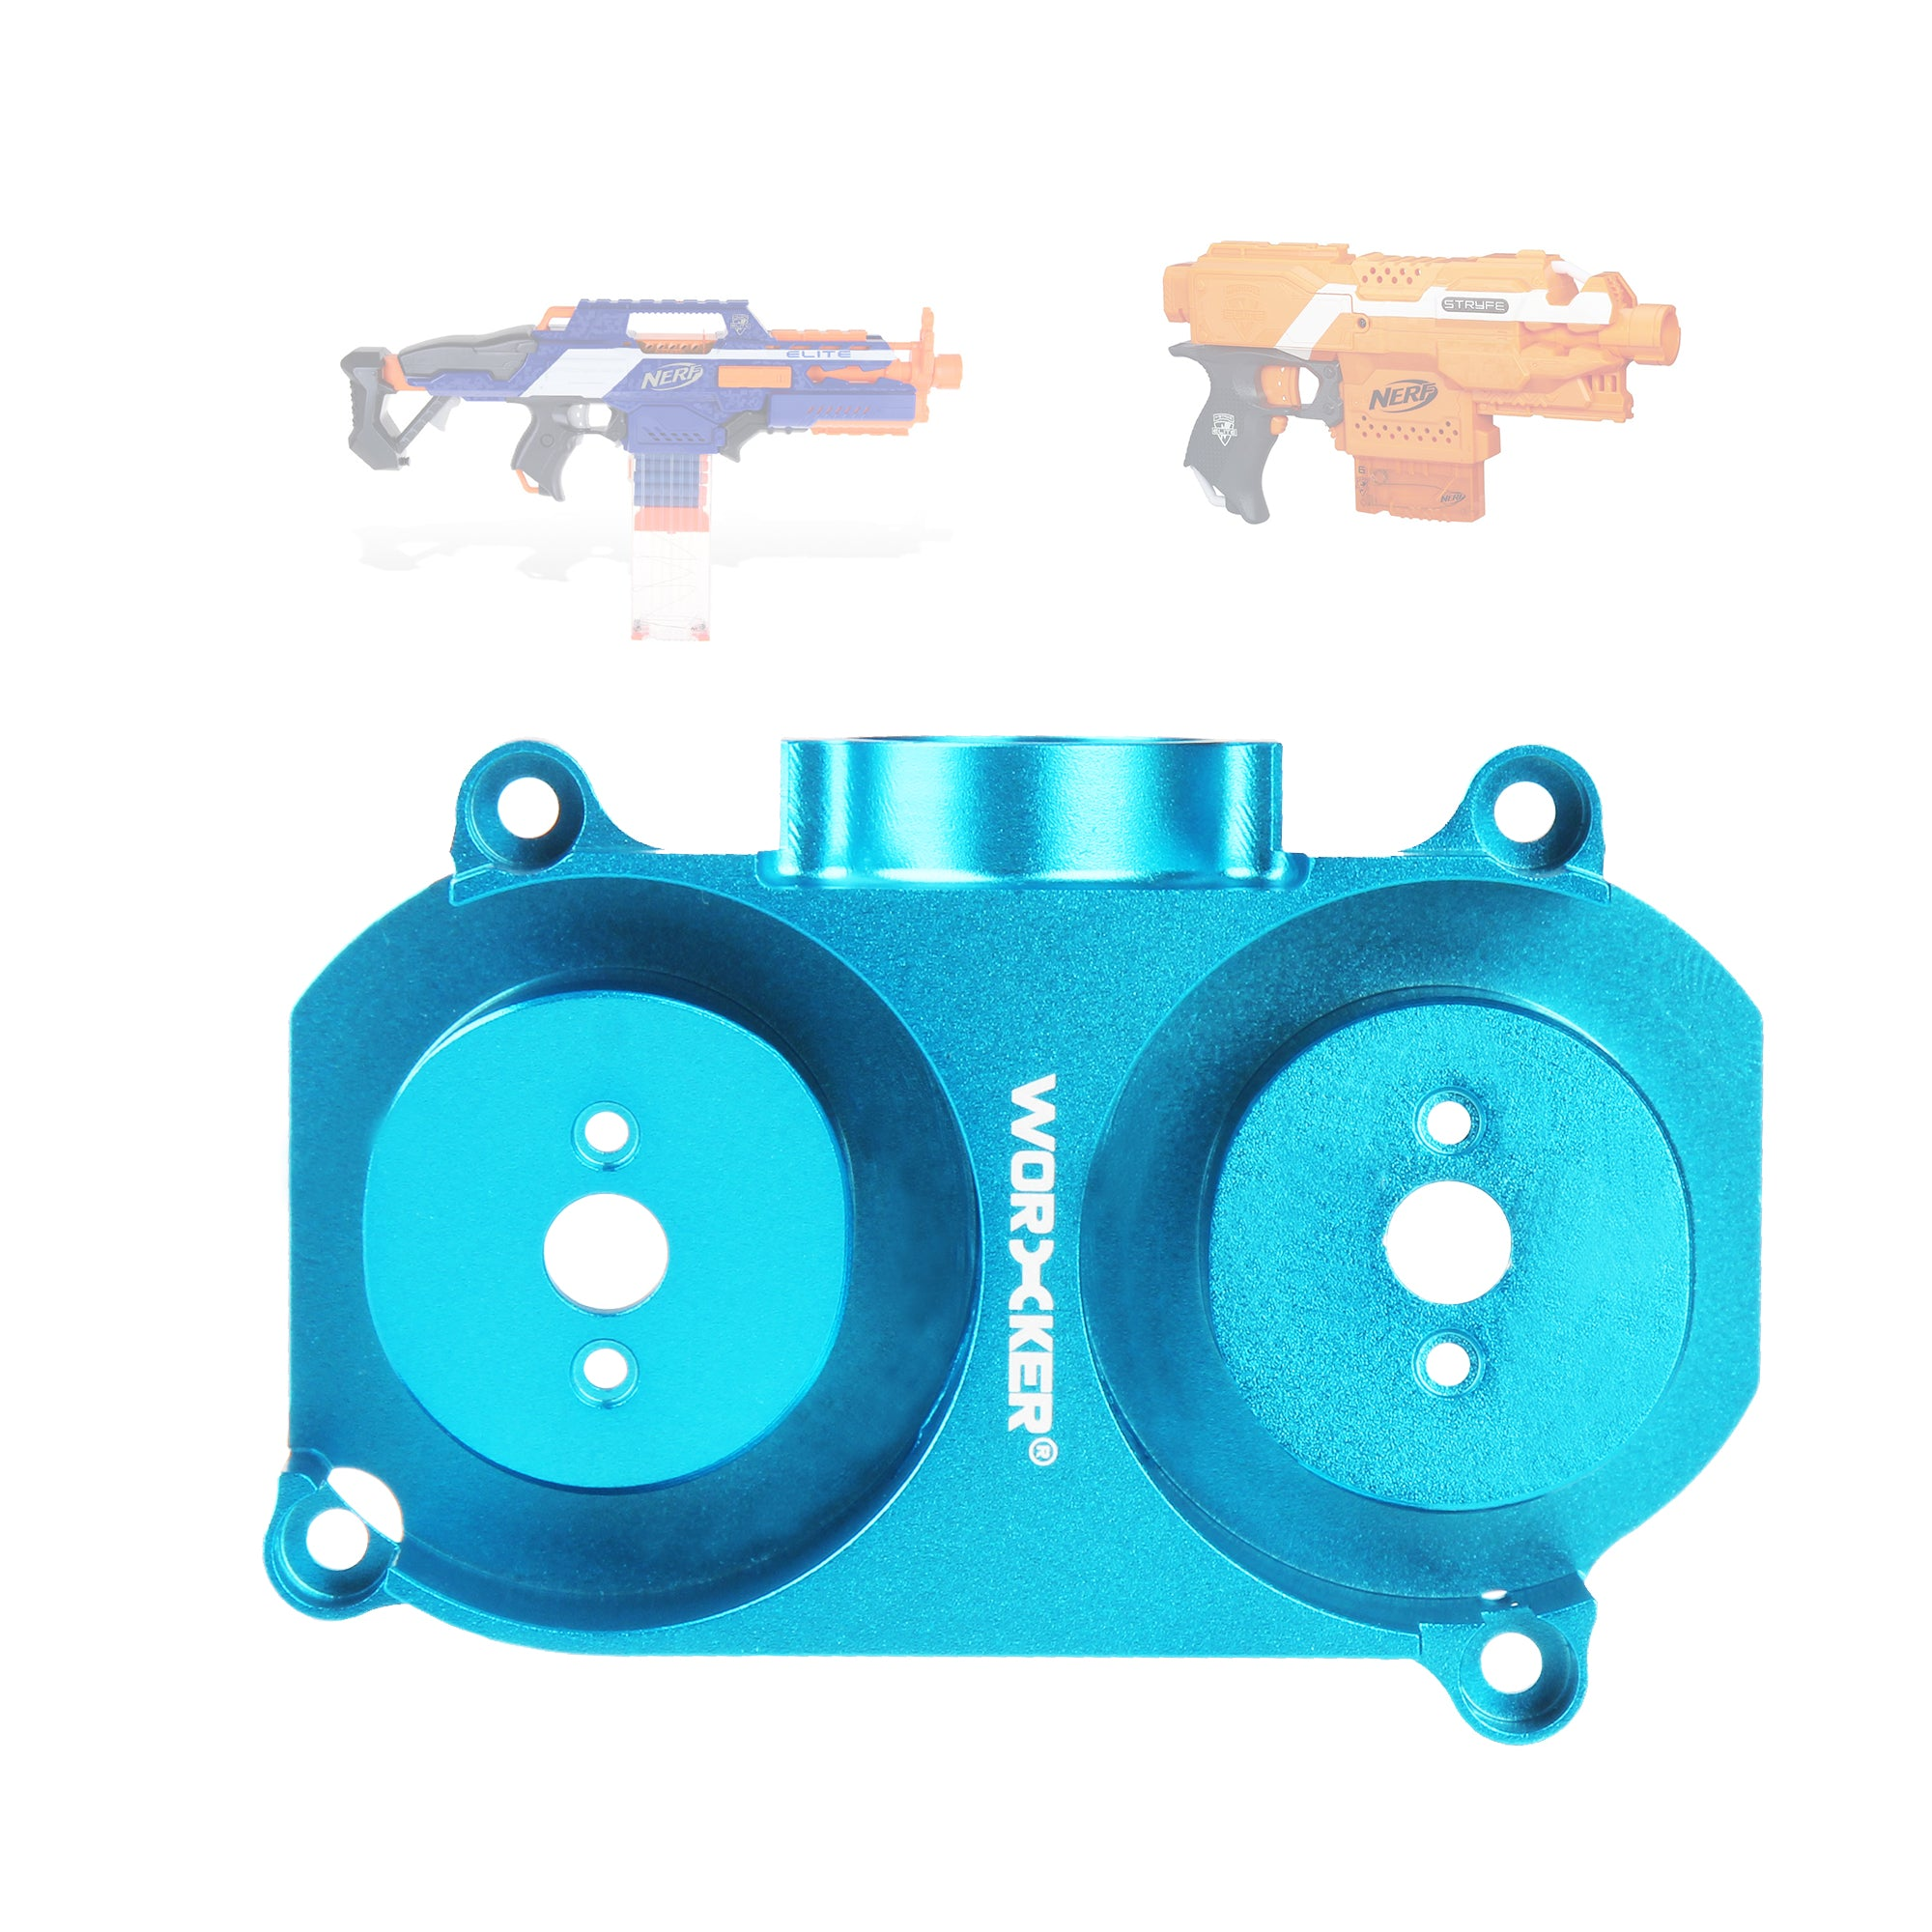 JGCWORKER Aluminum Alloy Modified Oblique Flywheel Cage For Nerf N-Strike - Nerf Mod Kits -Worker Mod Kits